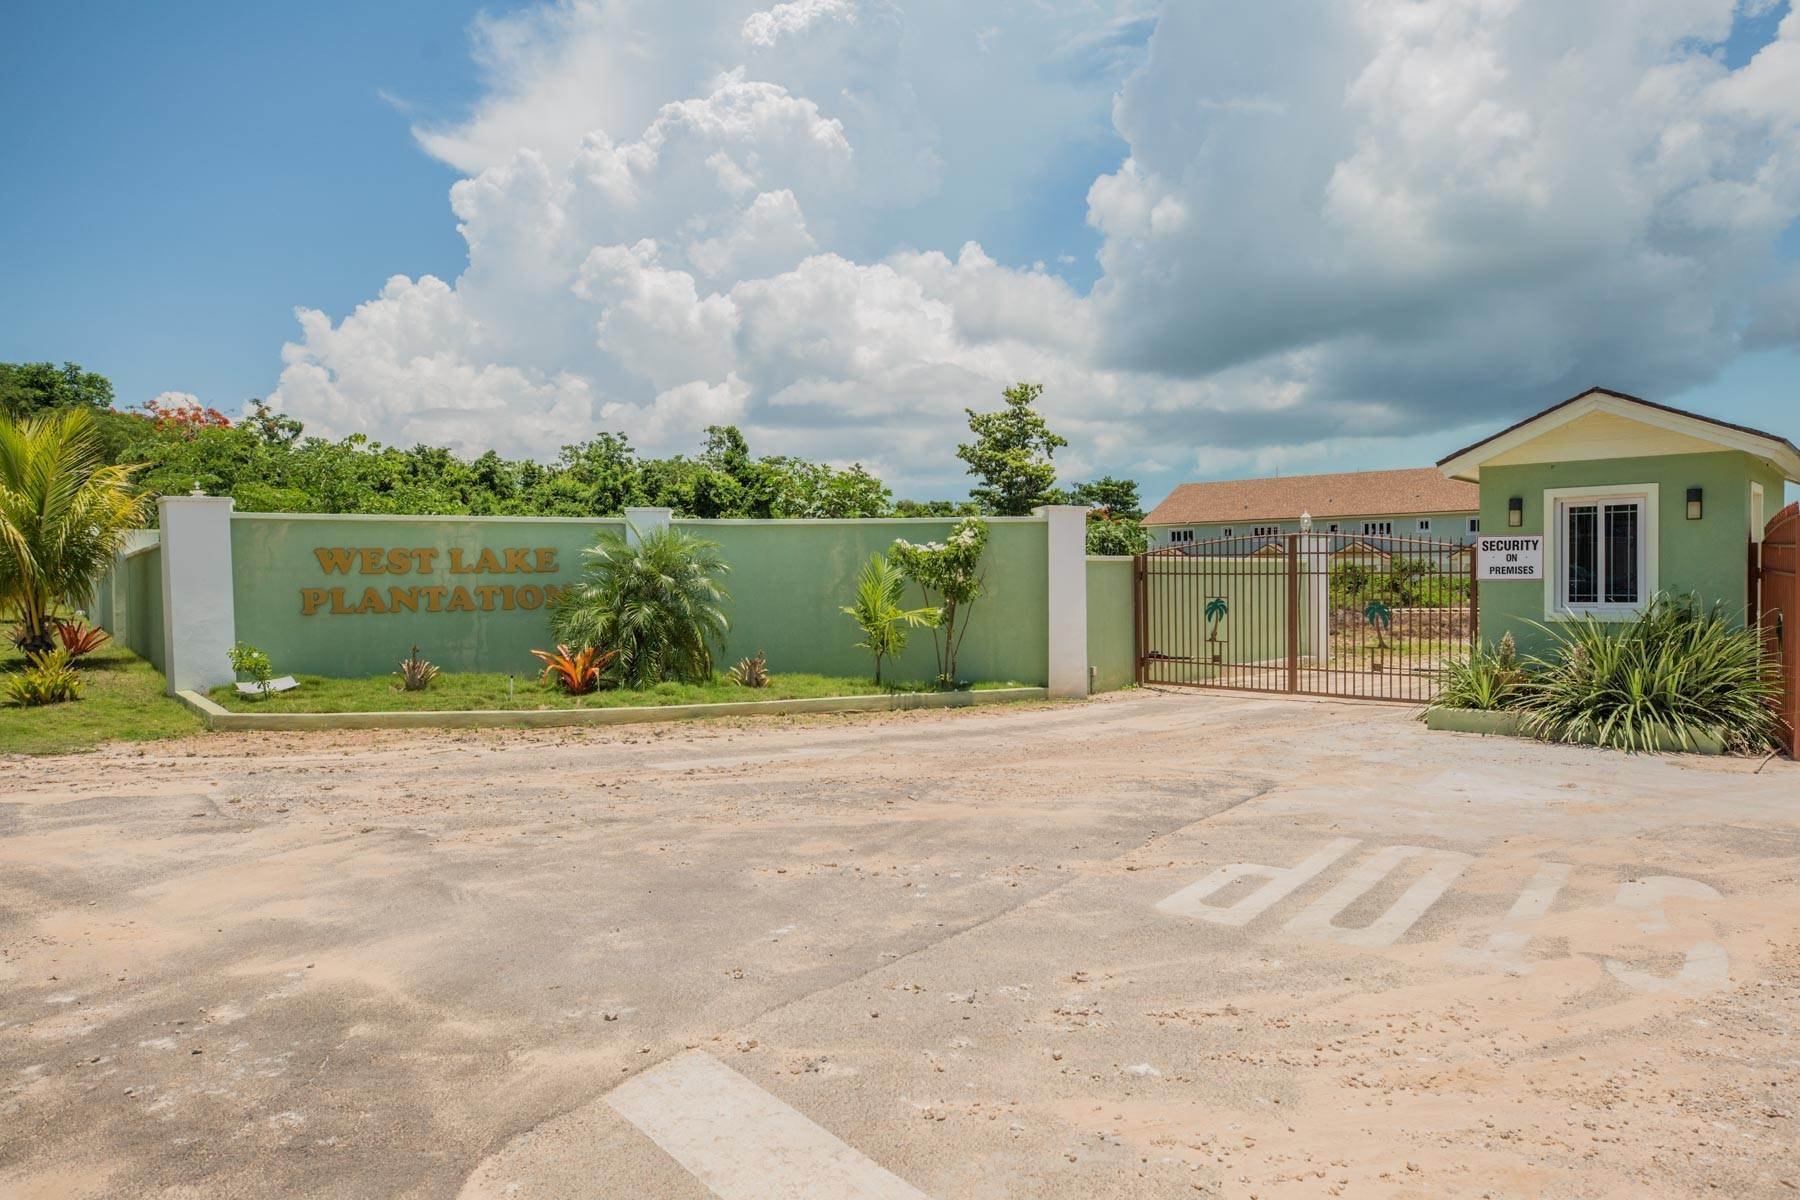 Terreno por un Venta en Lot 13 West Lake Plantation - MLS 35050 Nueva Providencia / Nassau, Bahamas